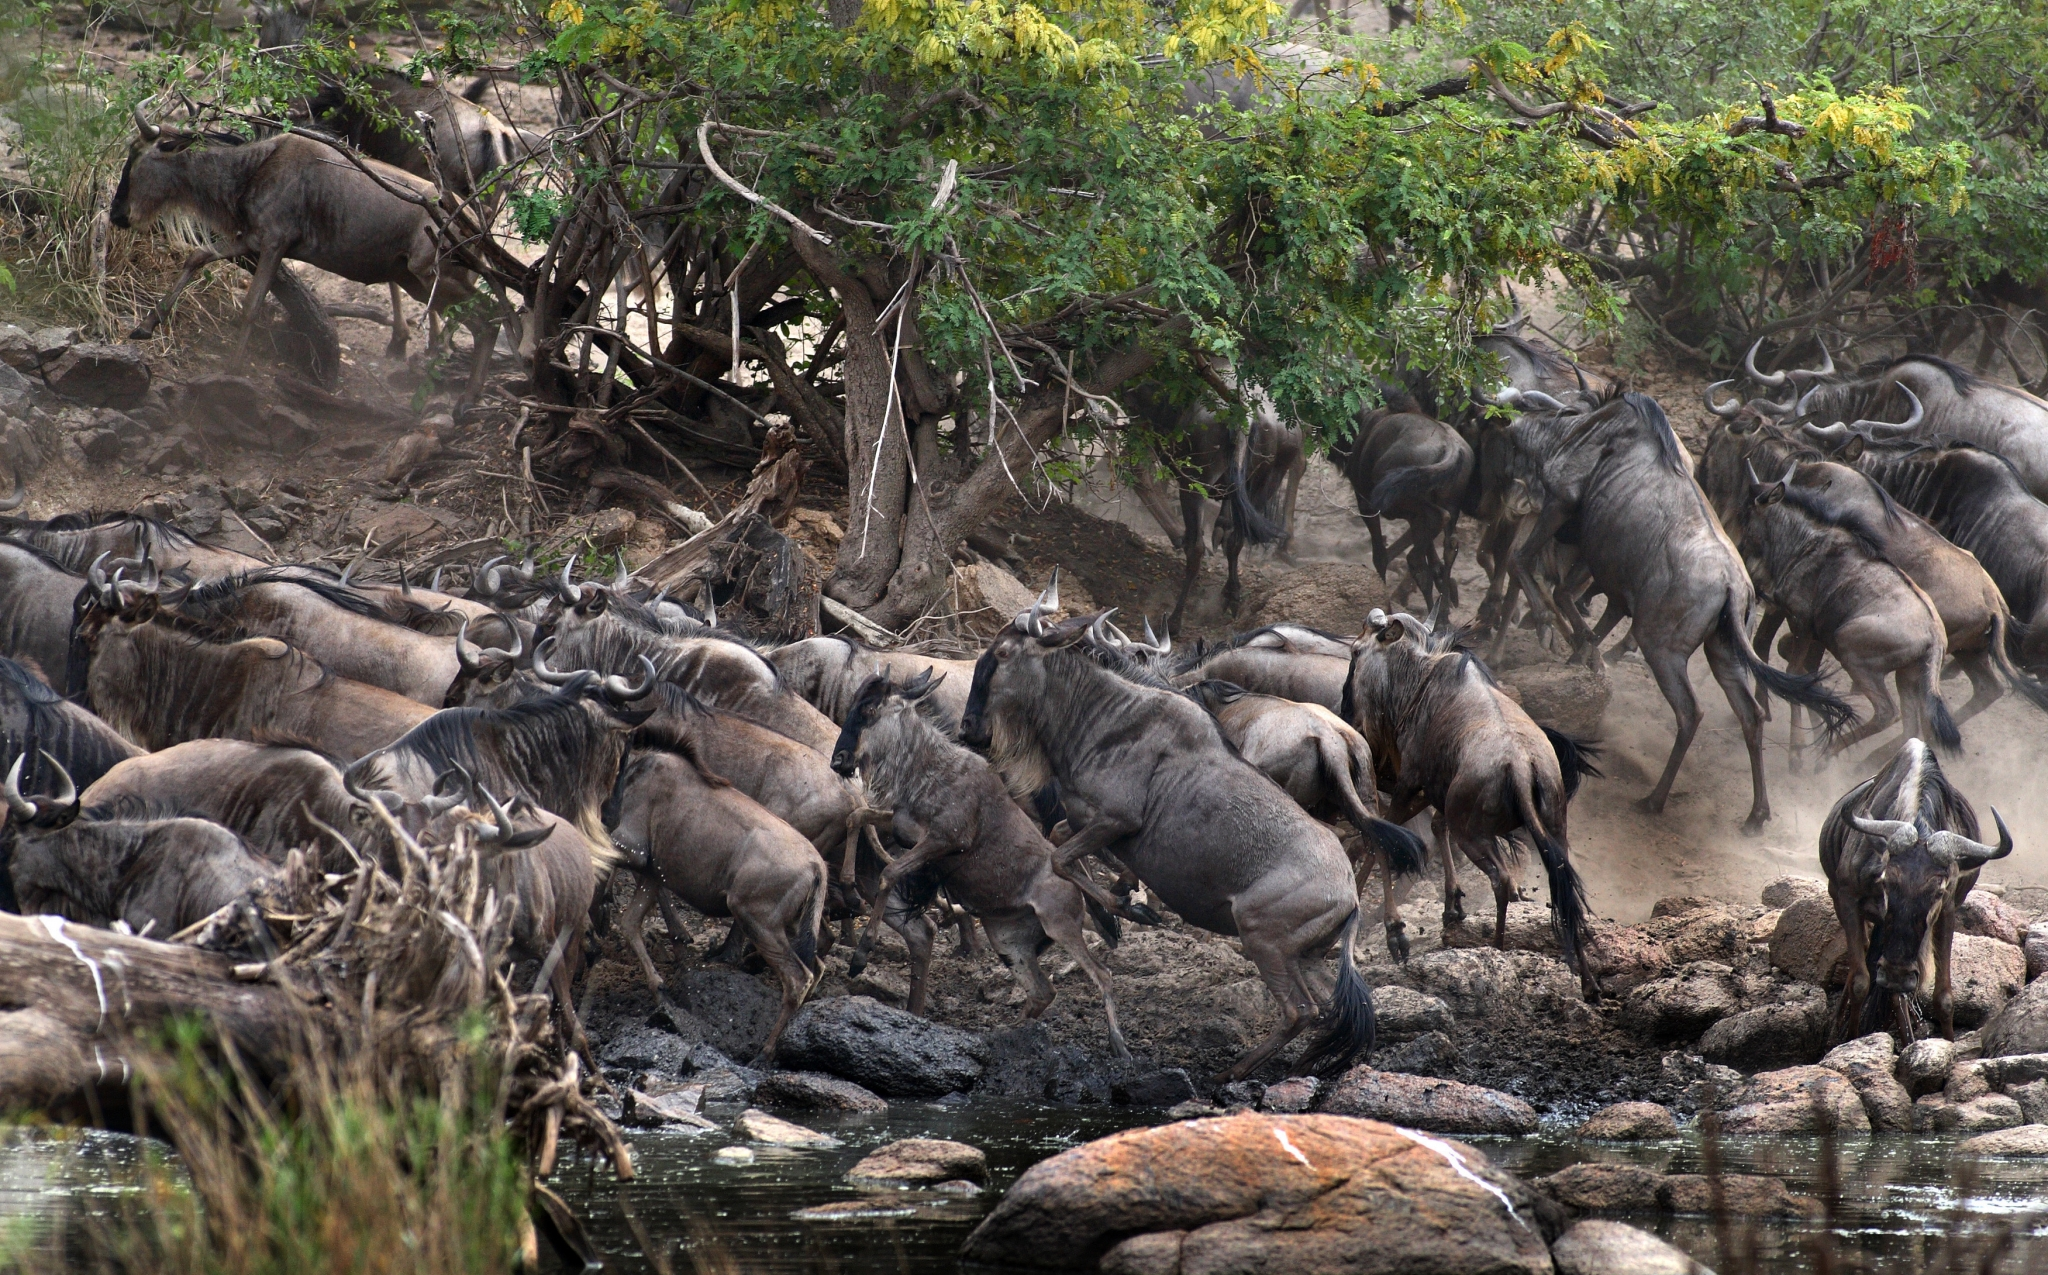 Wildebeest scrambling out of the Grumeti River